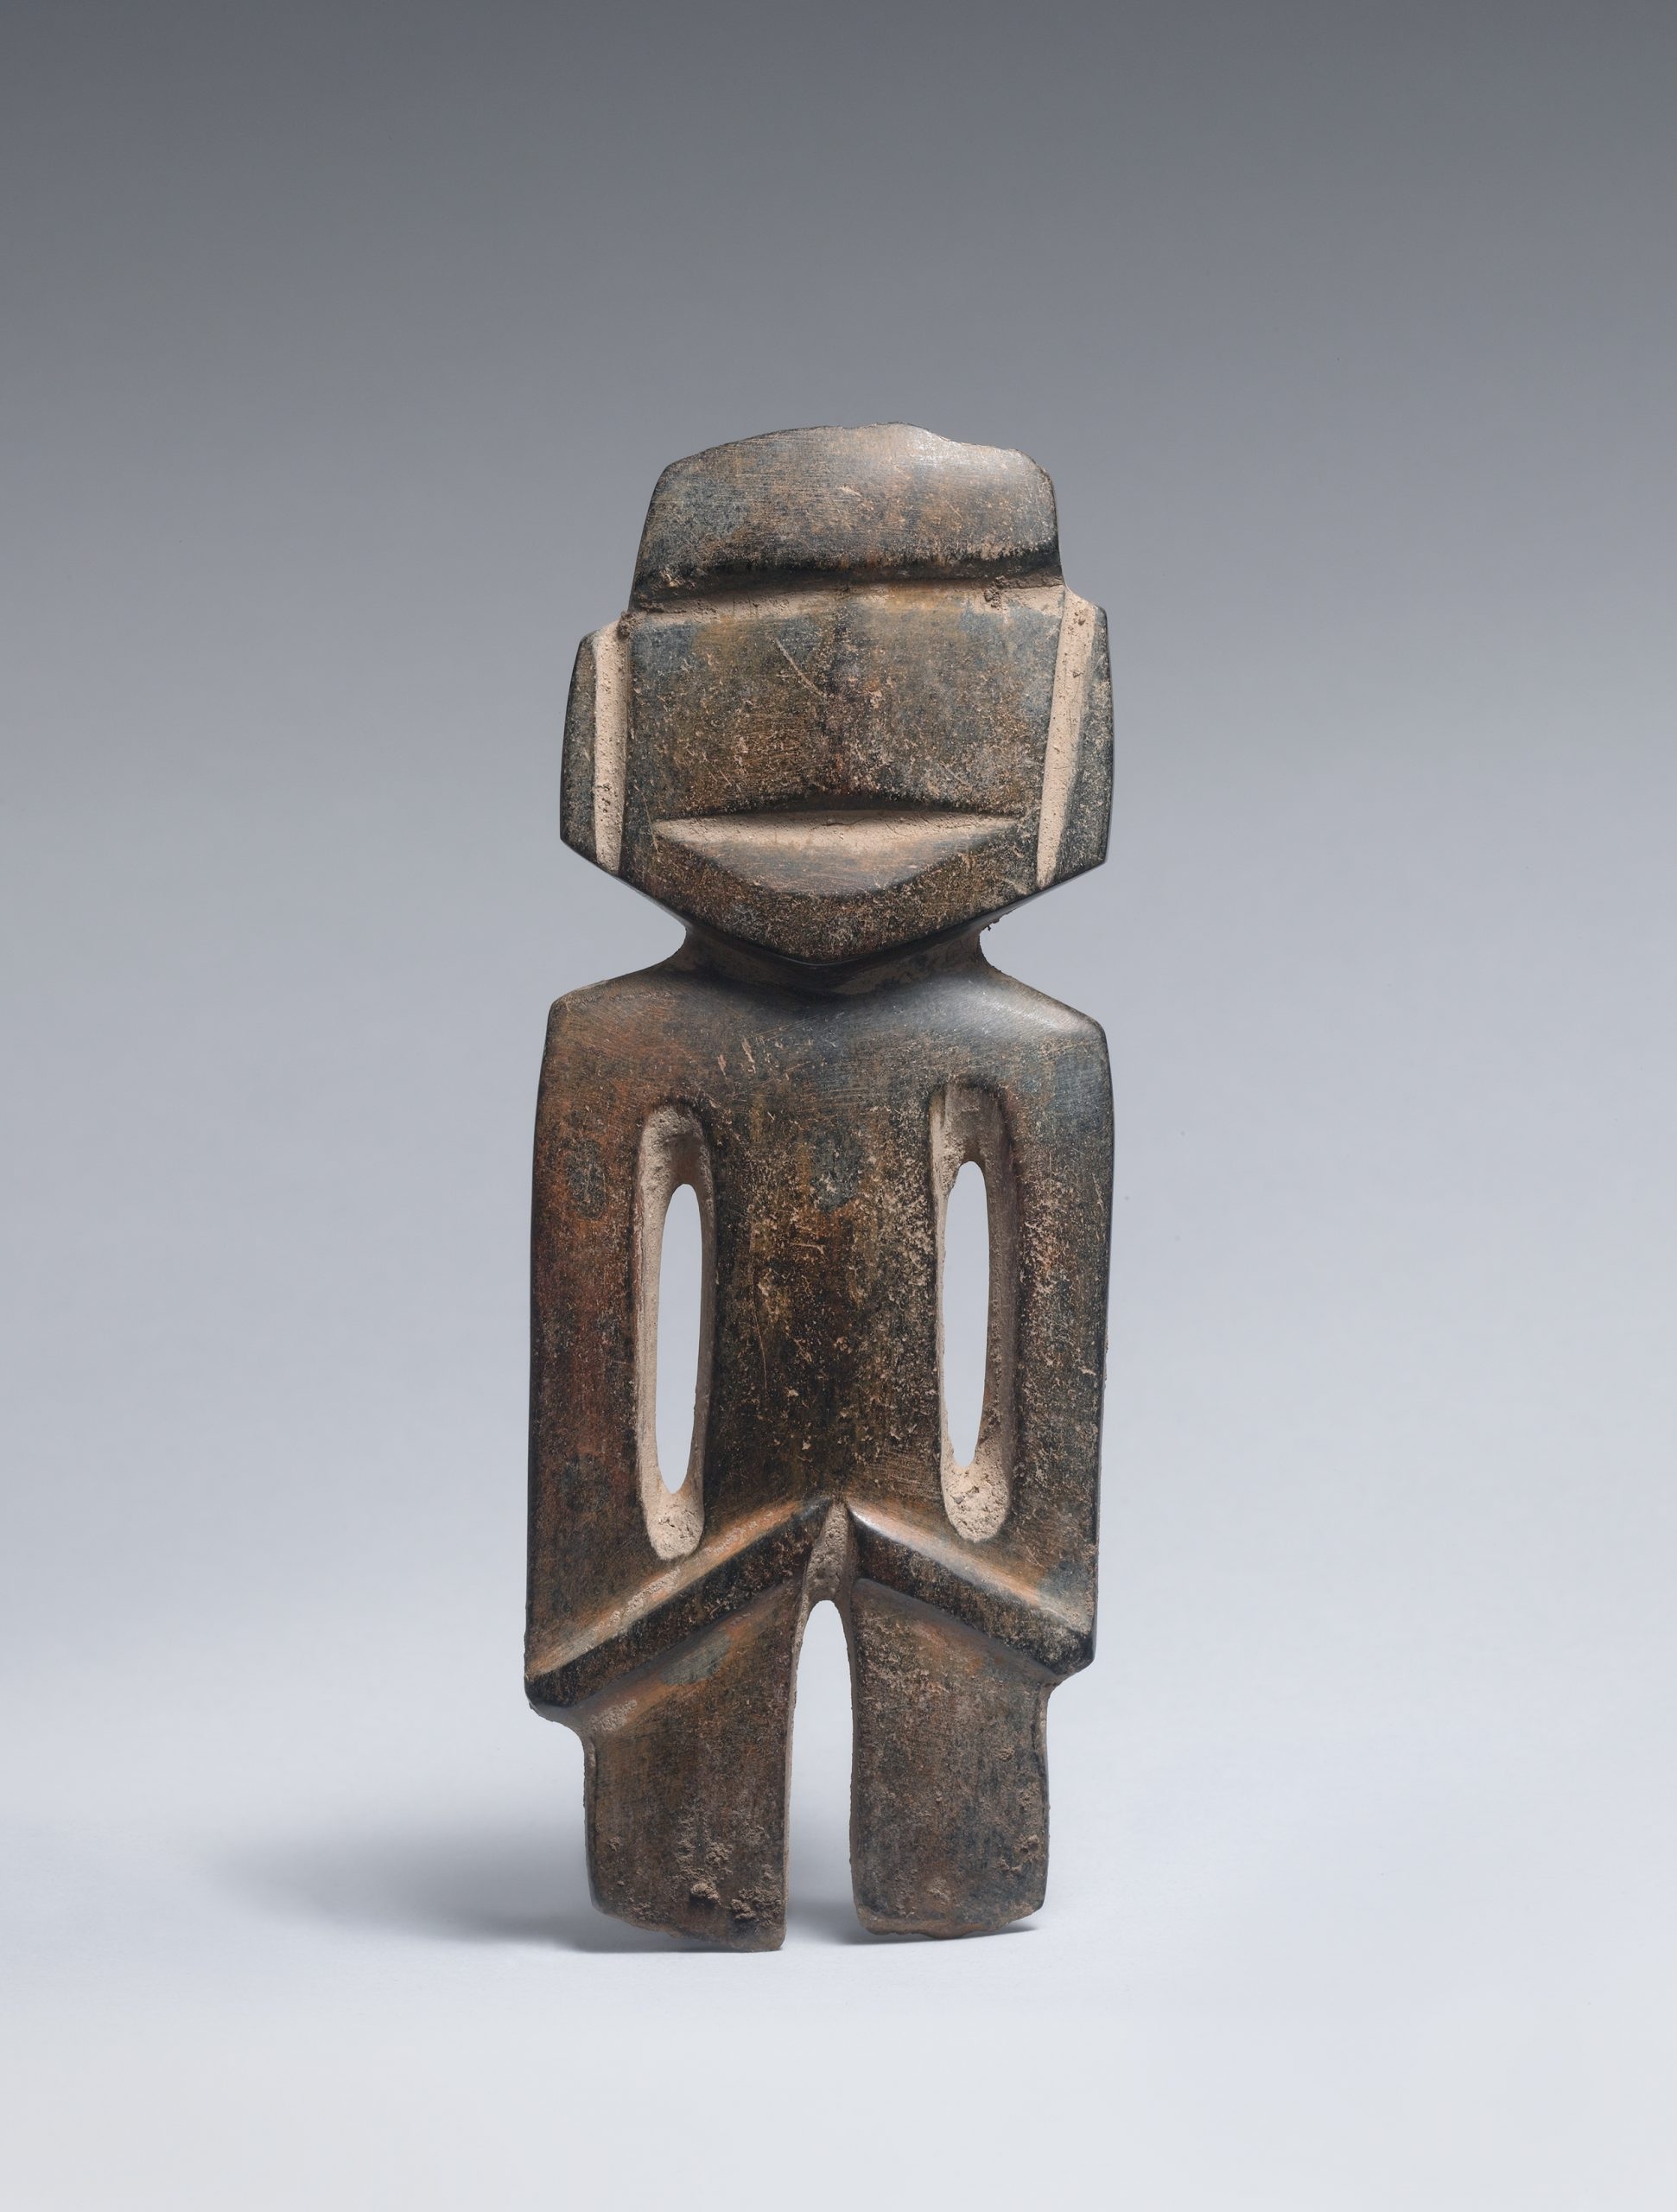 Brown stone figure with geometric cuts and hollows indicating physical and facial features.